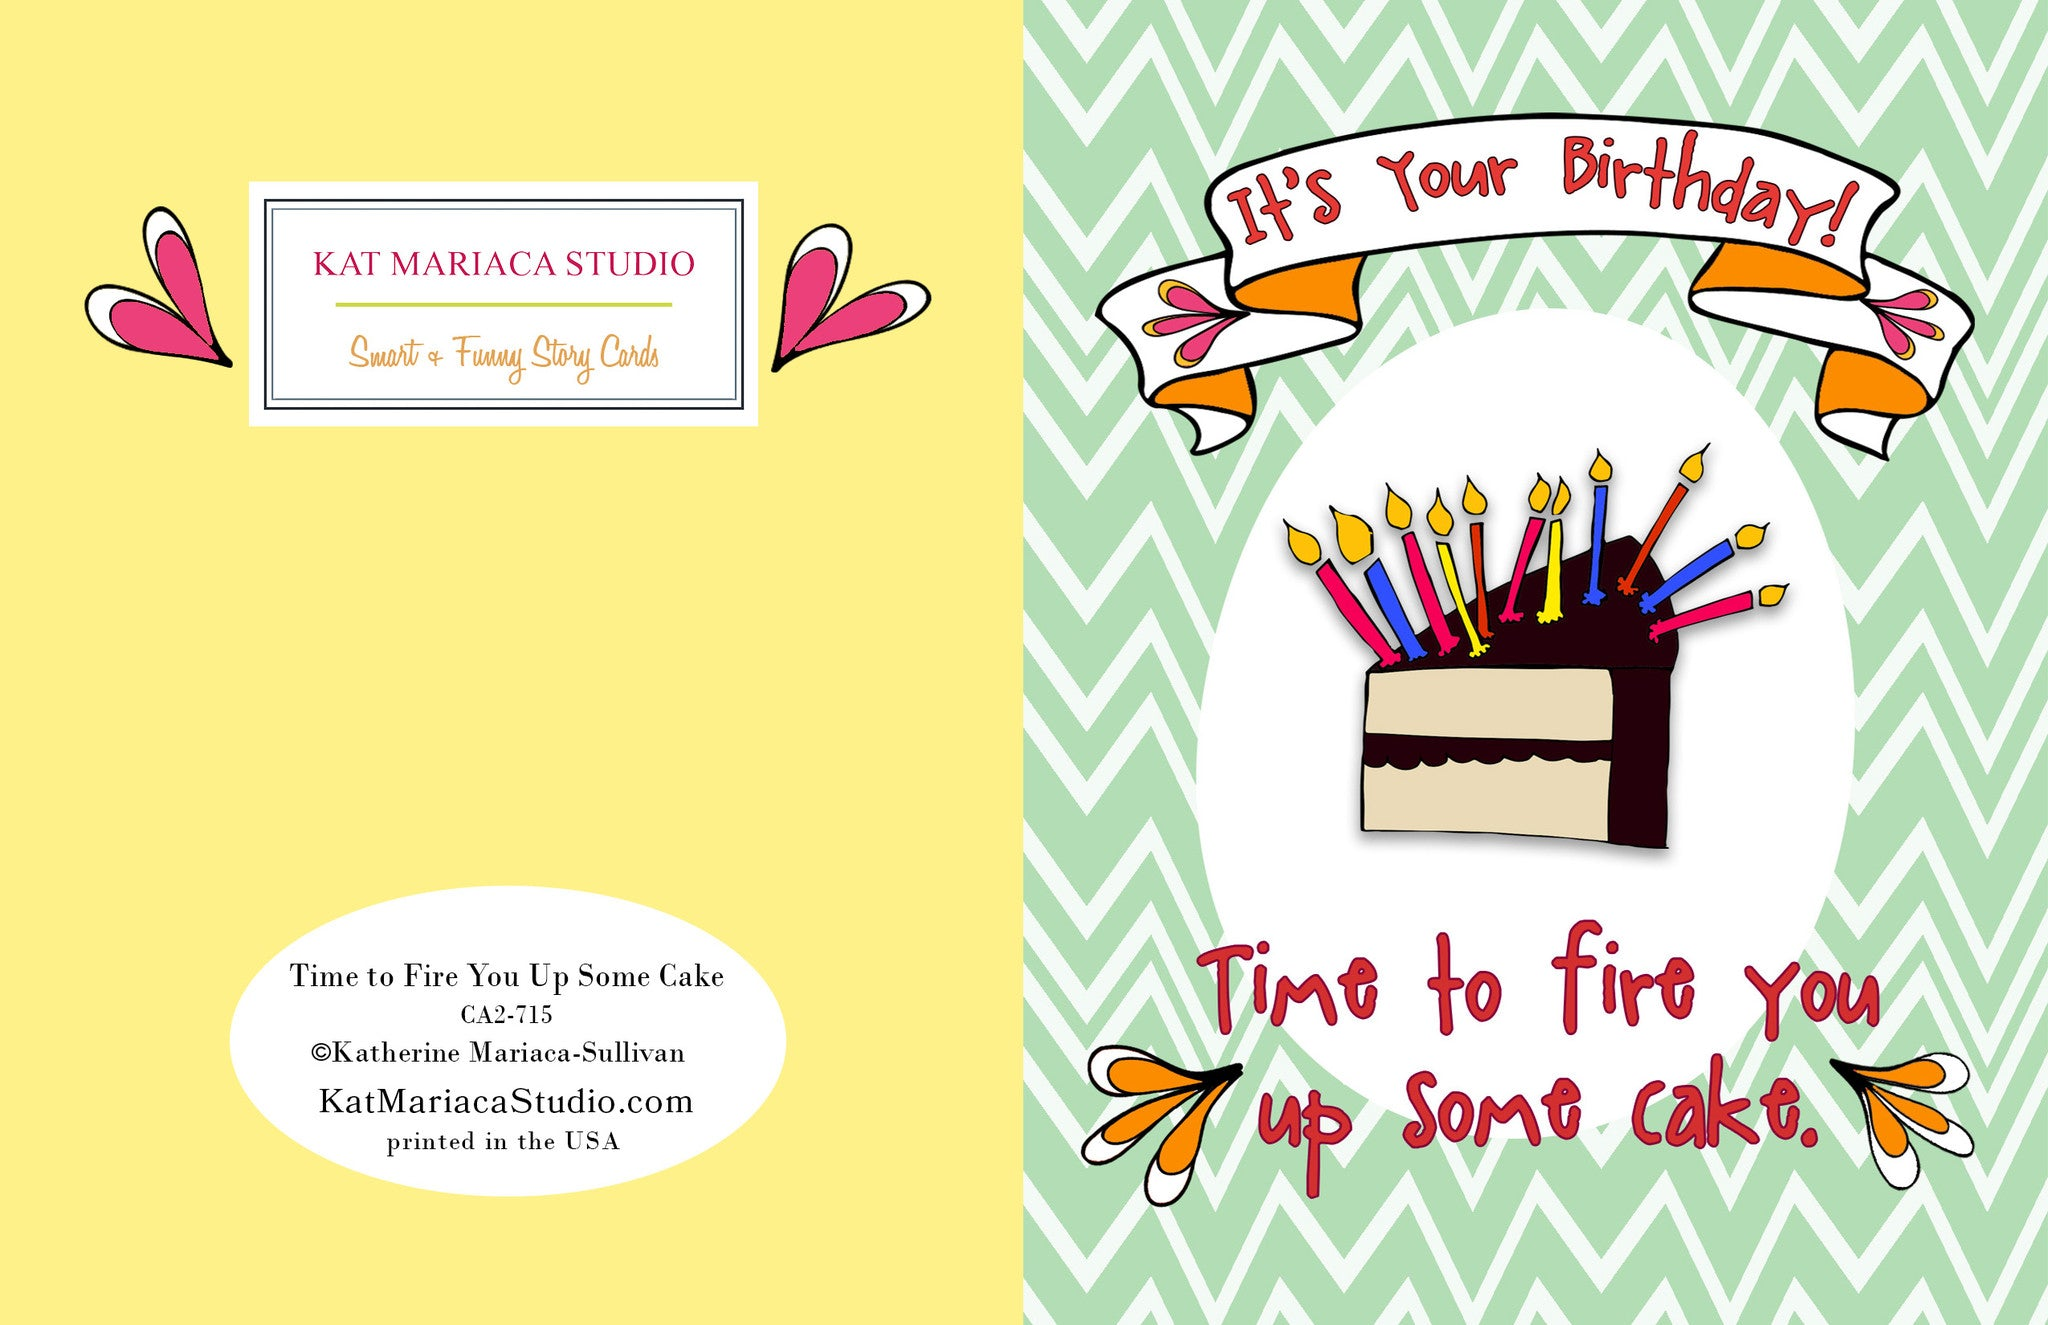 Funny Birthday Card Time to Fire You Up Some Cake KatMariacaStudio